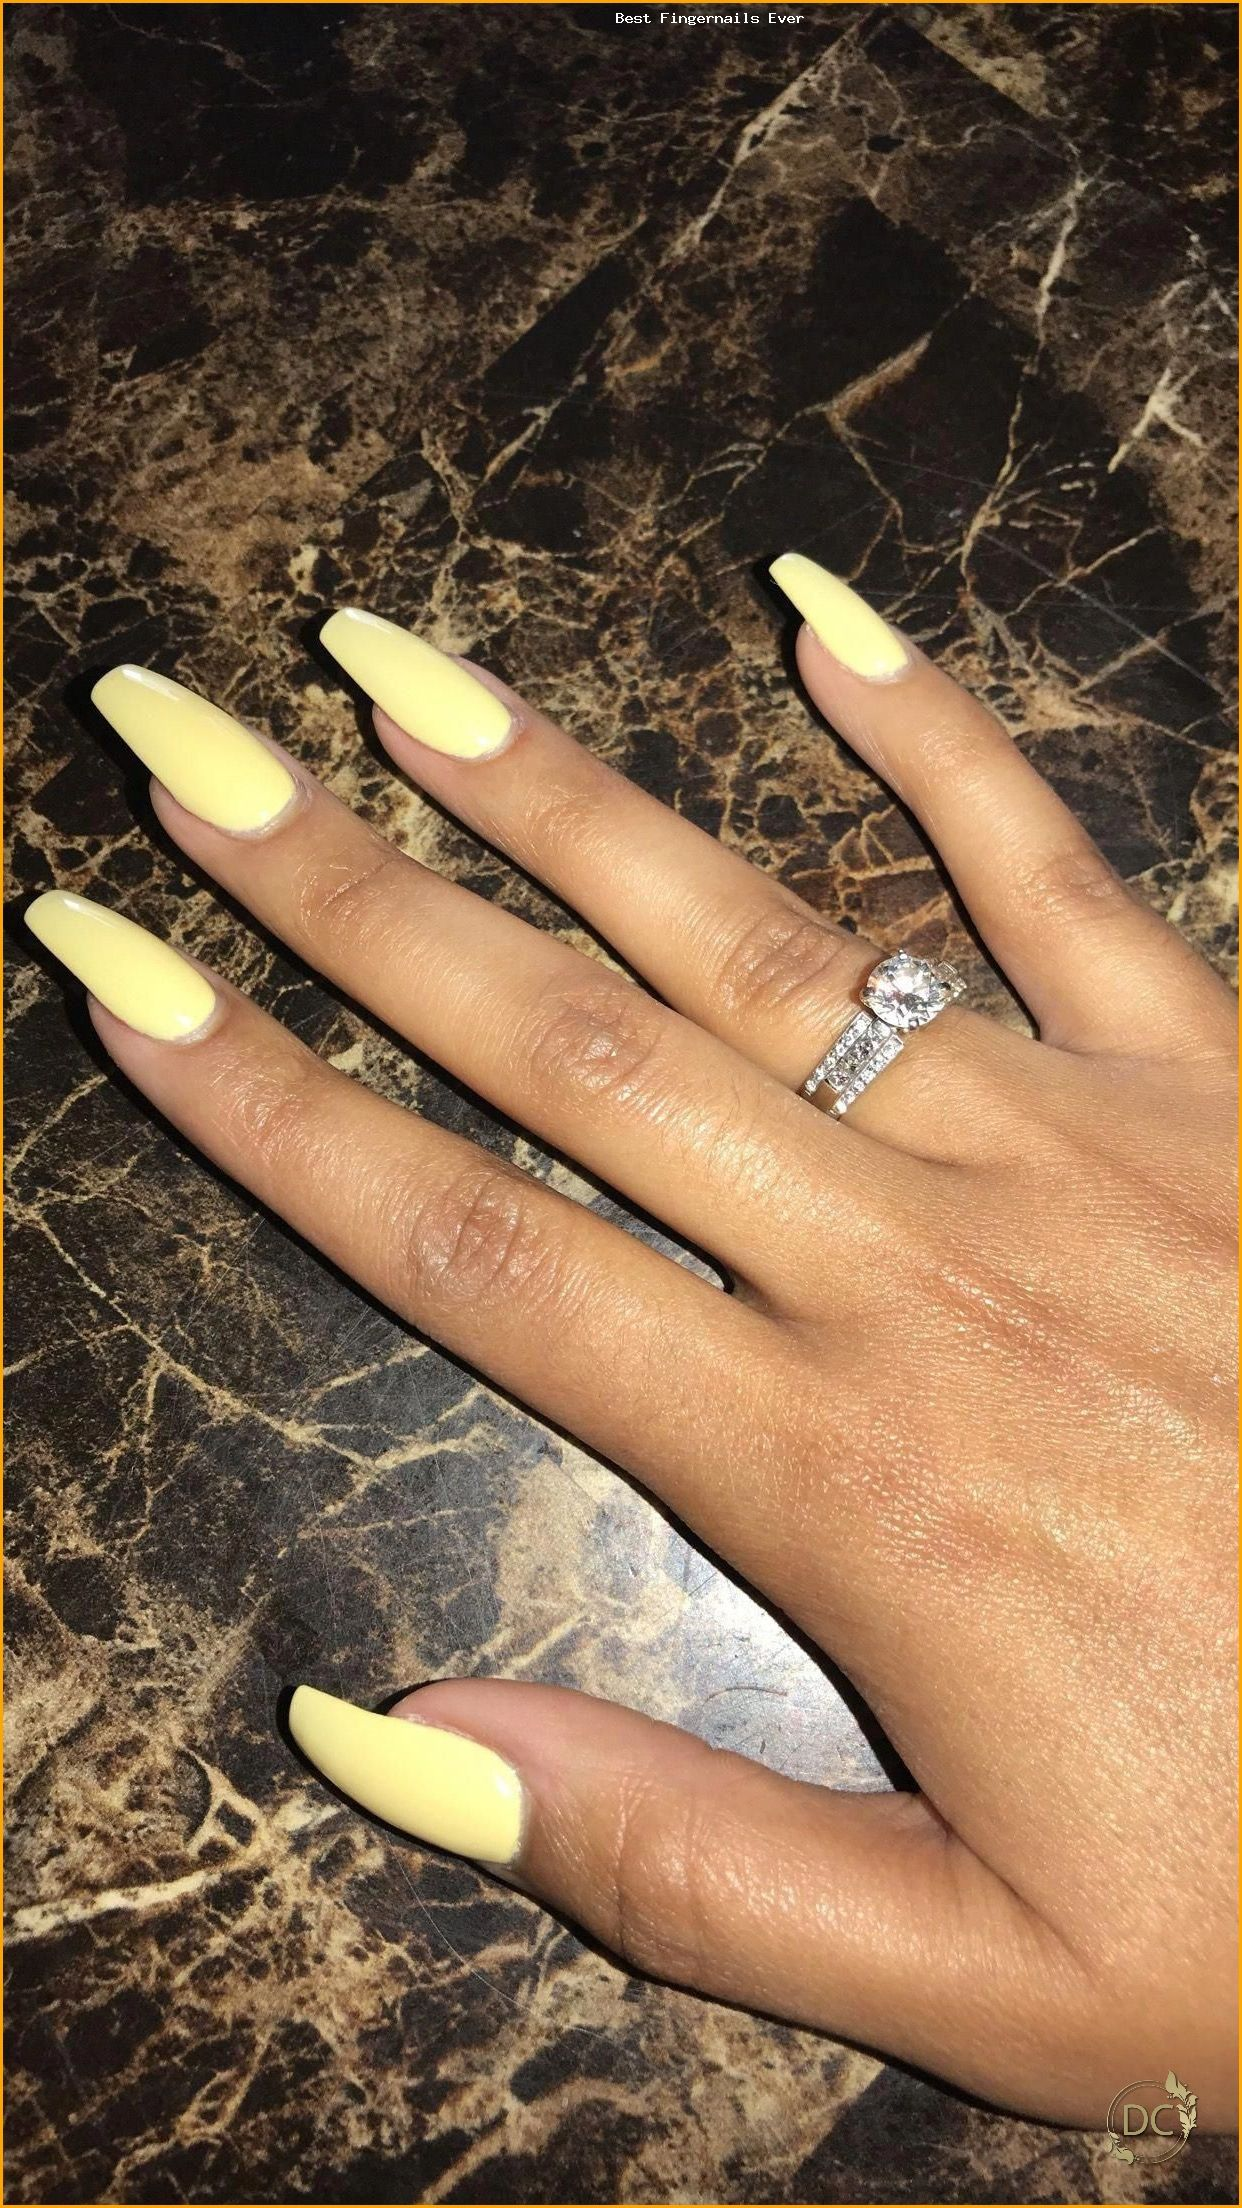 Yellow nails Pastel nails Spring nails Gel nails Acrylic coffin nails Long nails - Fingernails for Best Ever